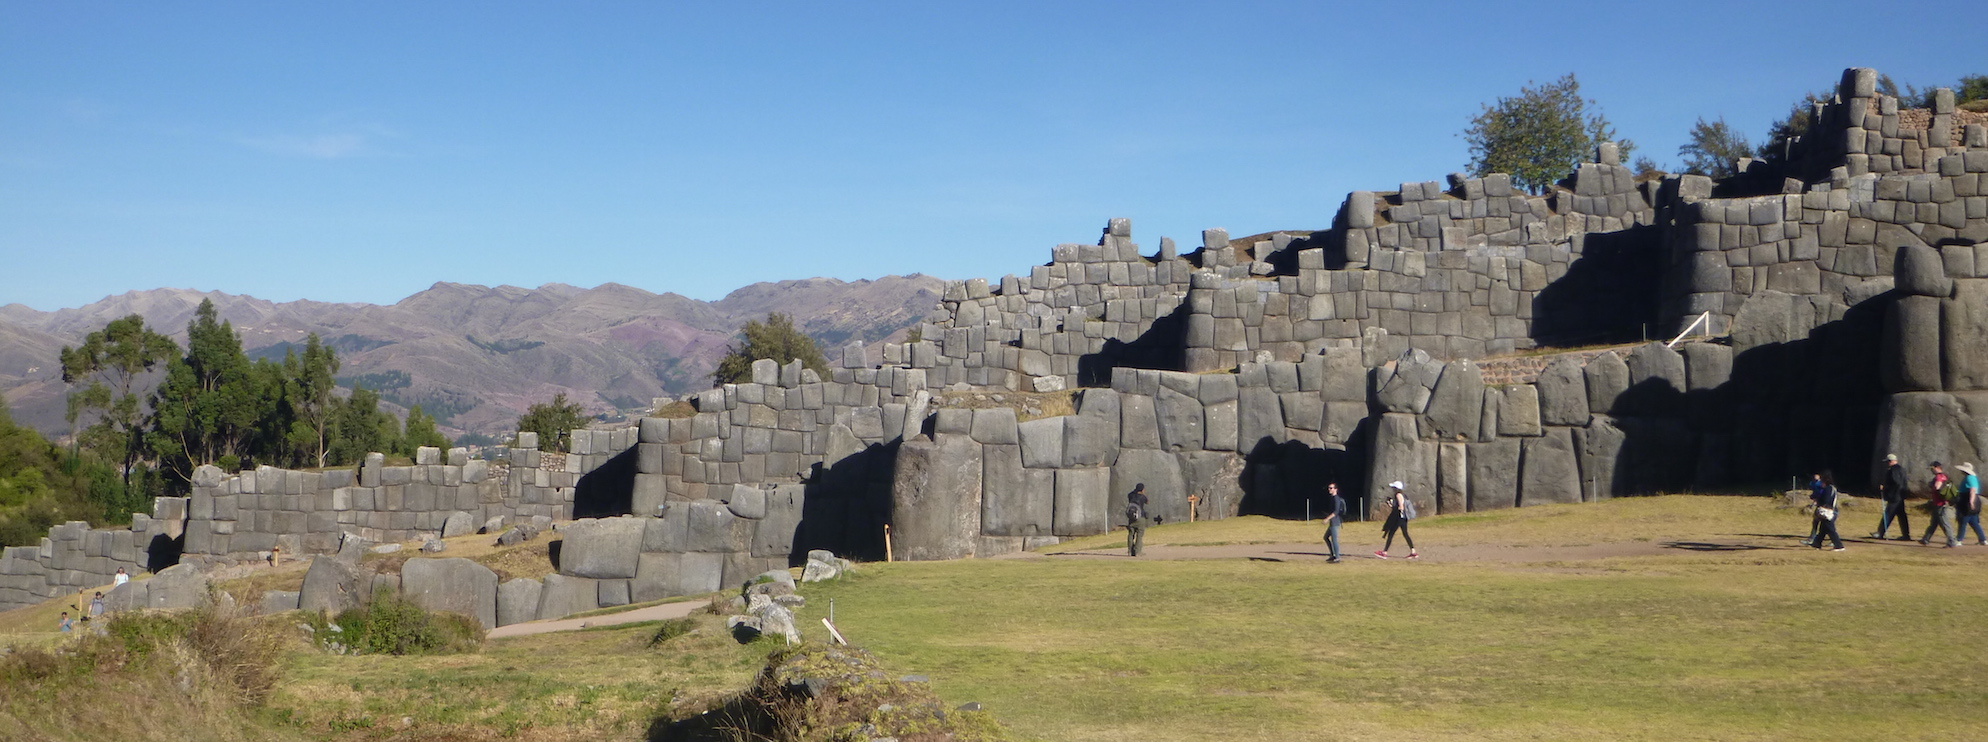 cusco wide